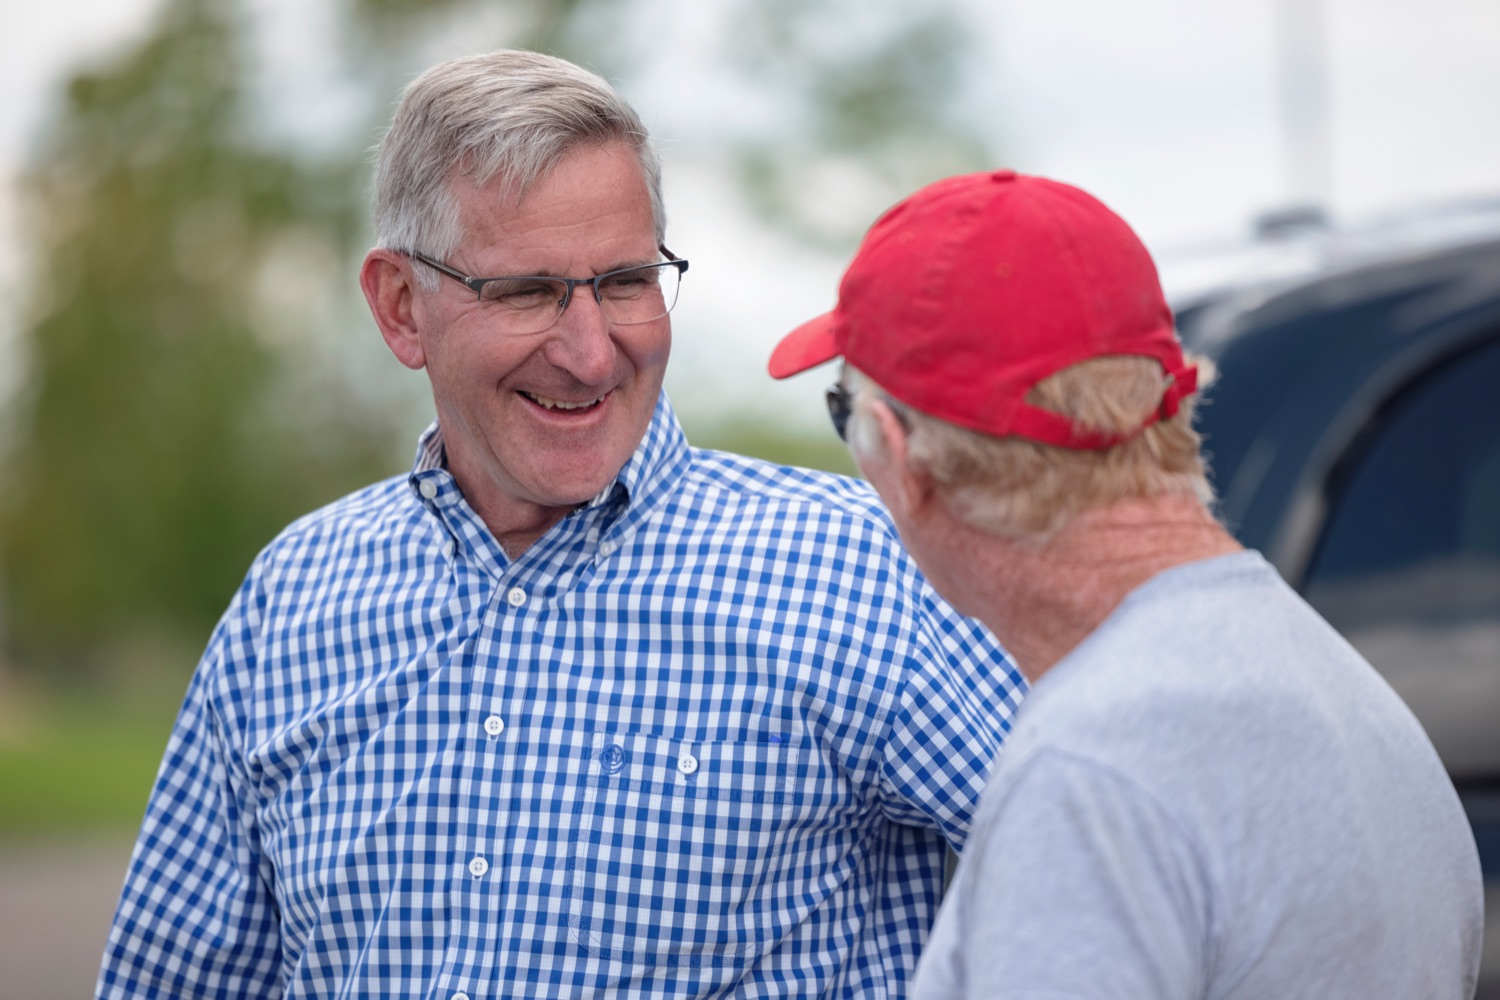 """<a href=""""https://filesource.wostreaming.net/commonwealthofpa/photo/19097_AG_DairyInnovation_NK_011.jpg"""" target=""""_blank"""">⇣Download Photo<br></a>PA Dept. of Agriculture Secretary Russell Redding talks with Ralph Frye, founder of Pleasant Lane Farms, in Latrobe on Thursday, September 9, 2021. In 2019, Pleasant Lane Farms reconstructed their operation and on-farm business plan to safeguard the farms future for the next generation. The Frye family constructed a new barn equipped with a robotic milker, atmospheric climate control to regulate barn temperature and cow brushes to promote cow comfort. The barn directly supplies the on-farm cheese processing facility, which received a $364,082 Pennsylvania Dairy Investment Program grant to support marketing and value-added processing equipment investments. Today, the creamery at Pleasant Lane Farms processes 15,000 to 25,000 pounds of milk and produces more 1,700 to 2,900 pounds of cheese each week."""